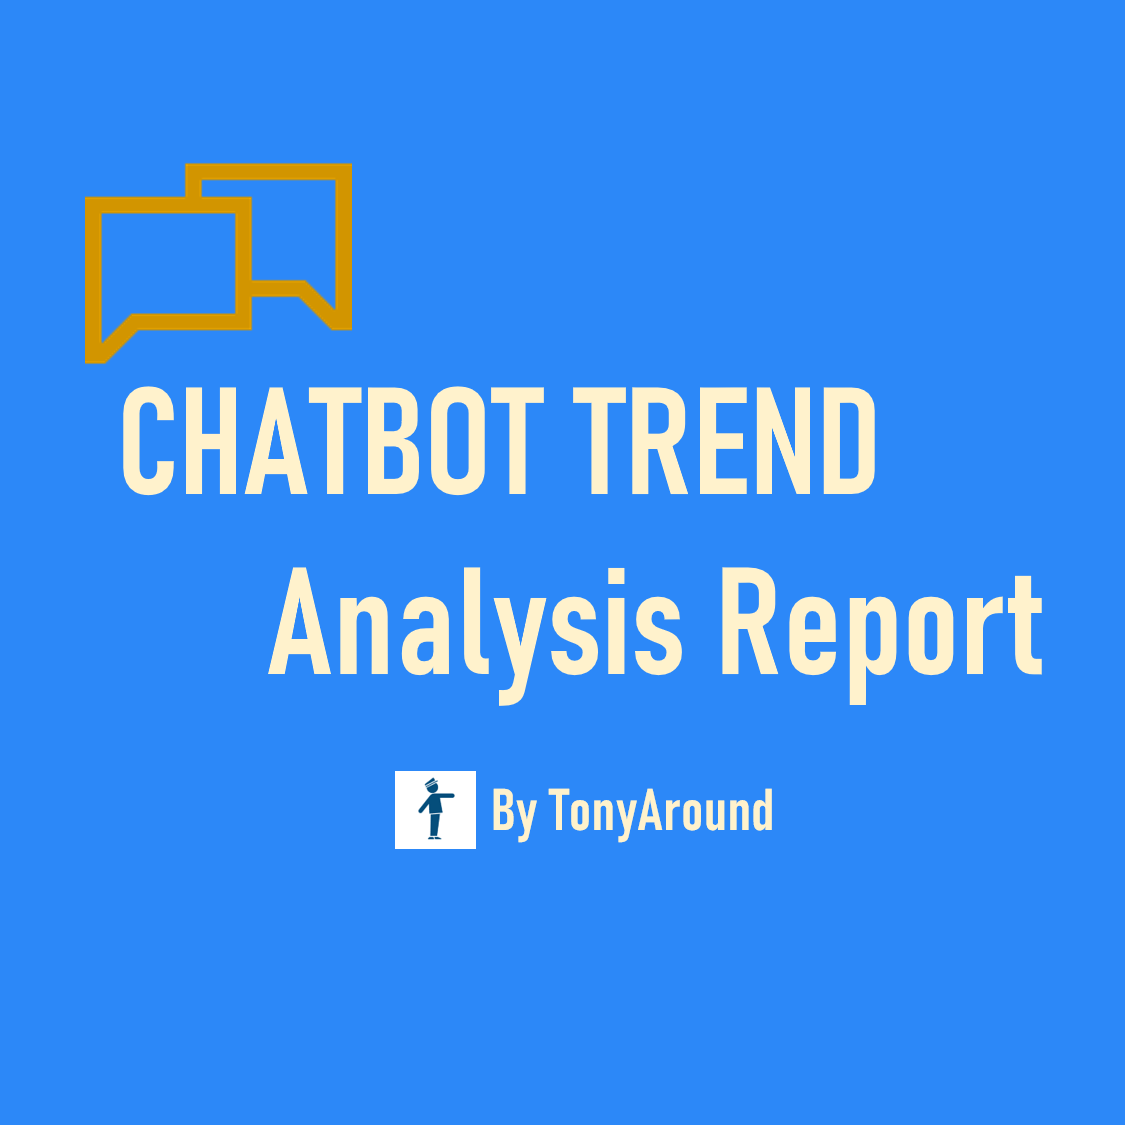 [June 2020]Chatbot Trend Analysis Report by TonyAround